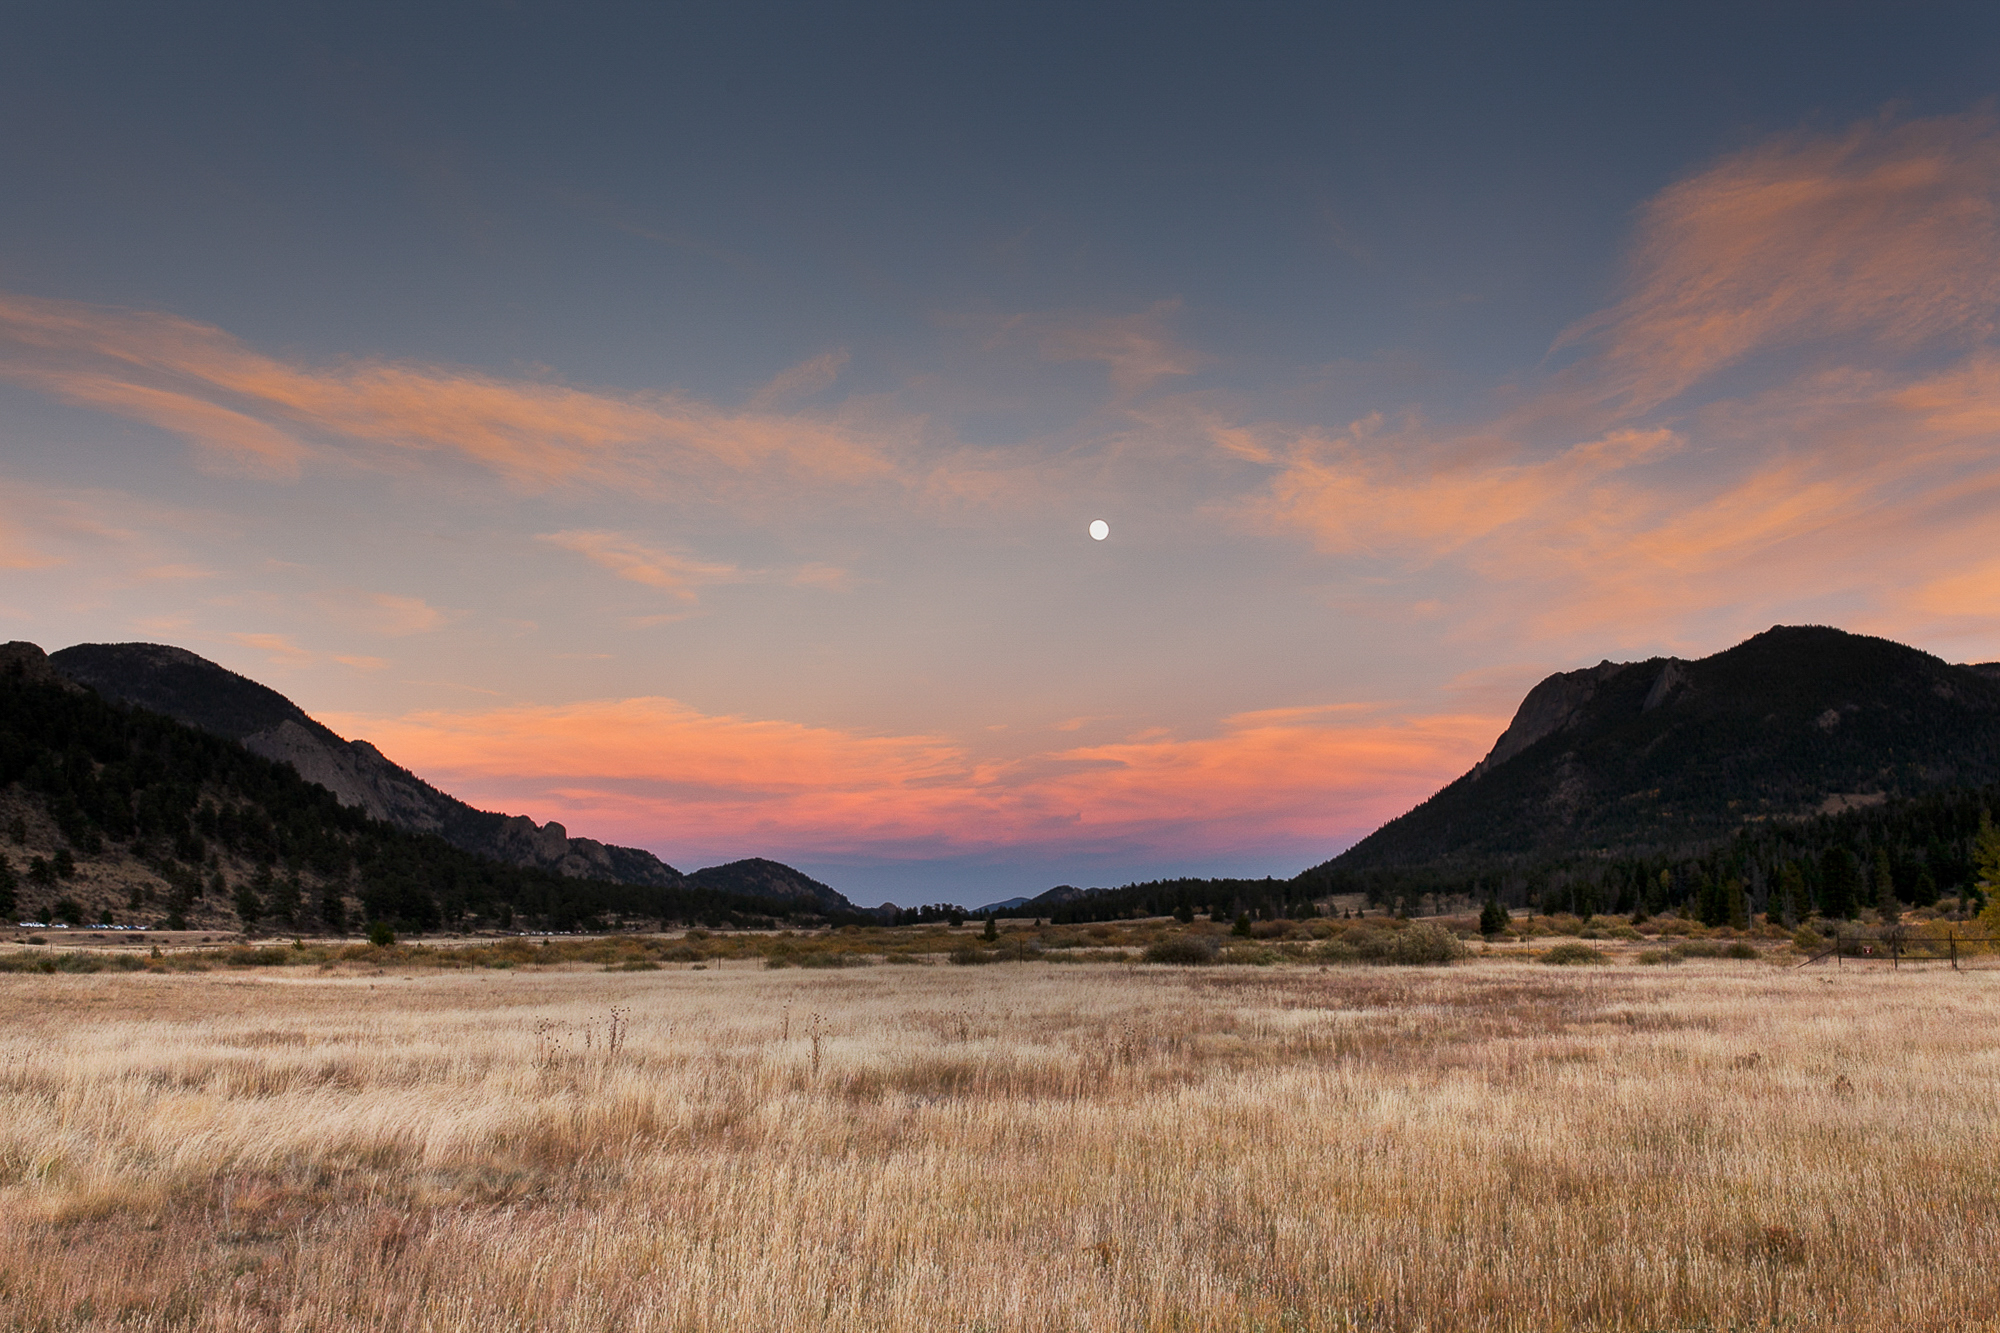 071Travel_Adventure_Outdoor_Photography_Outlive_Creative_COLORADO_Tundra_Trails_Rocky_Mountains.jpg